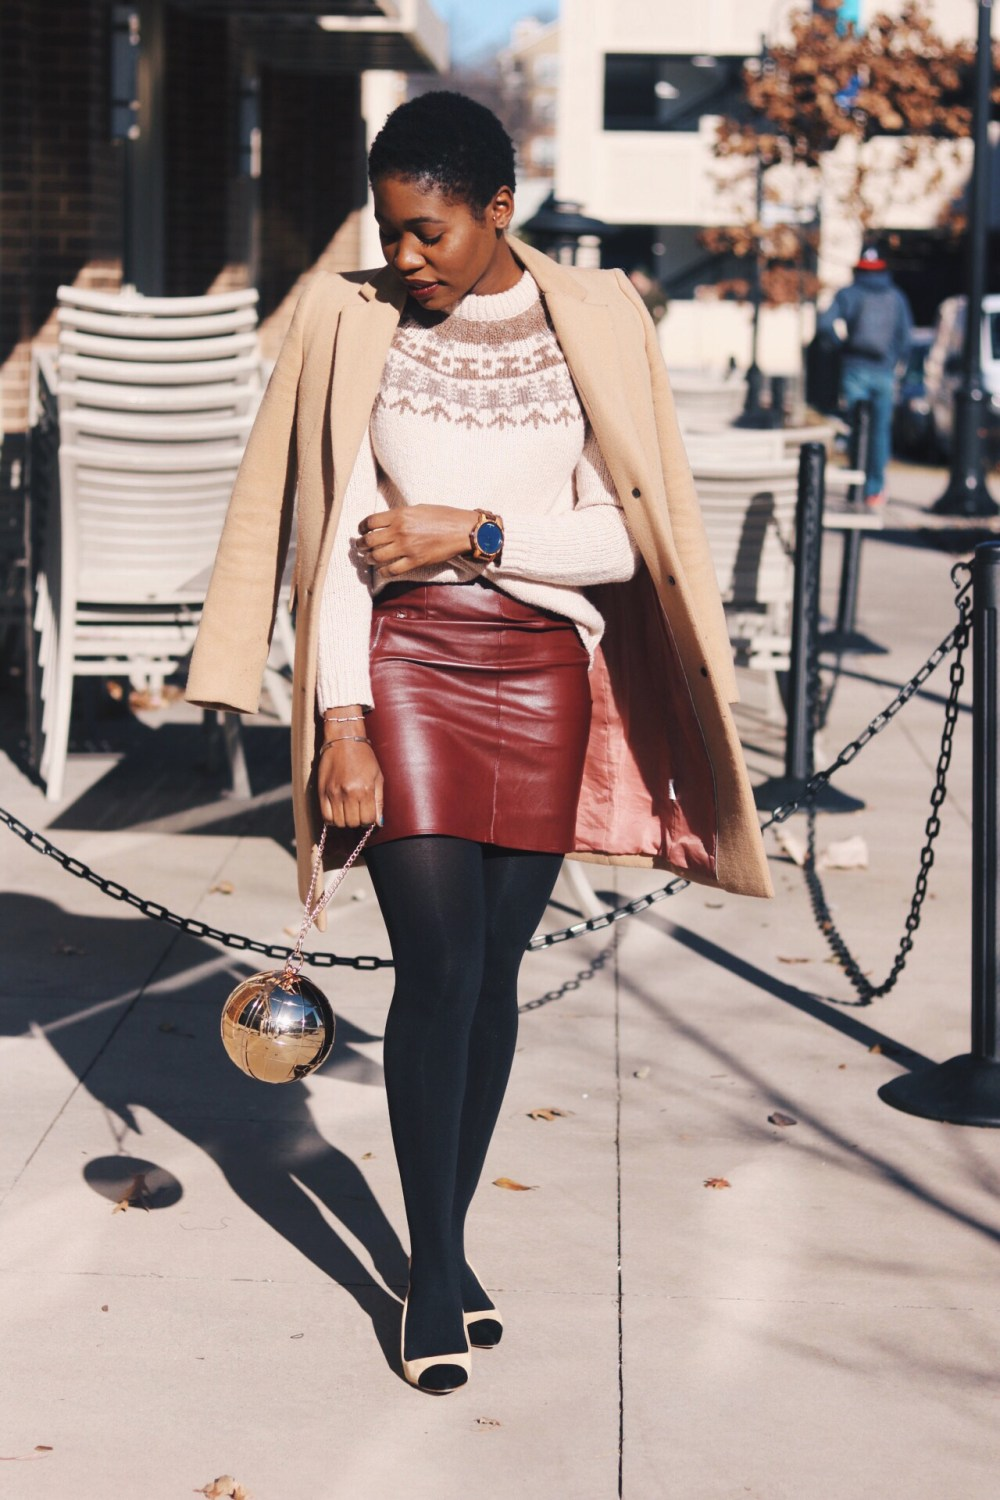 ALT= leather mini skirt and Mary Janes